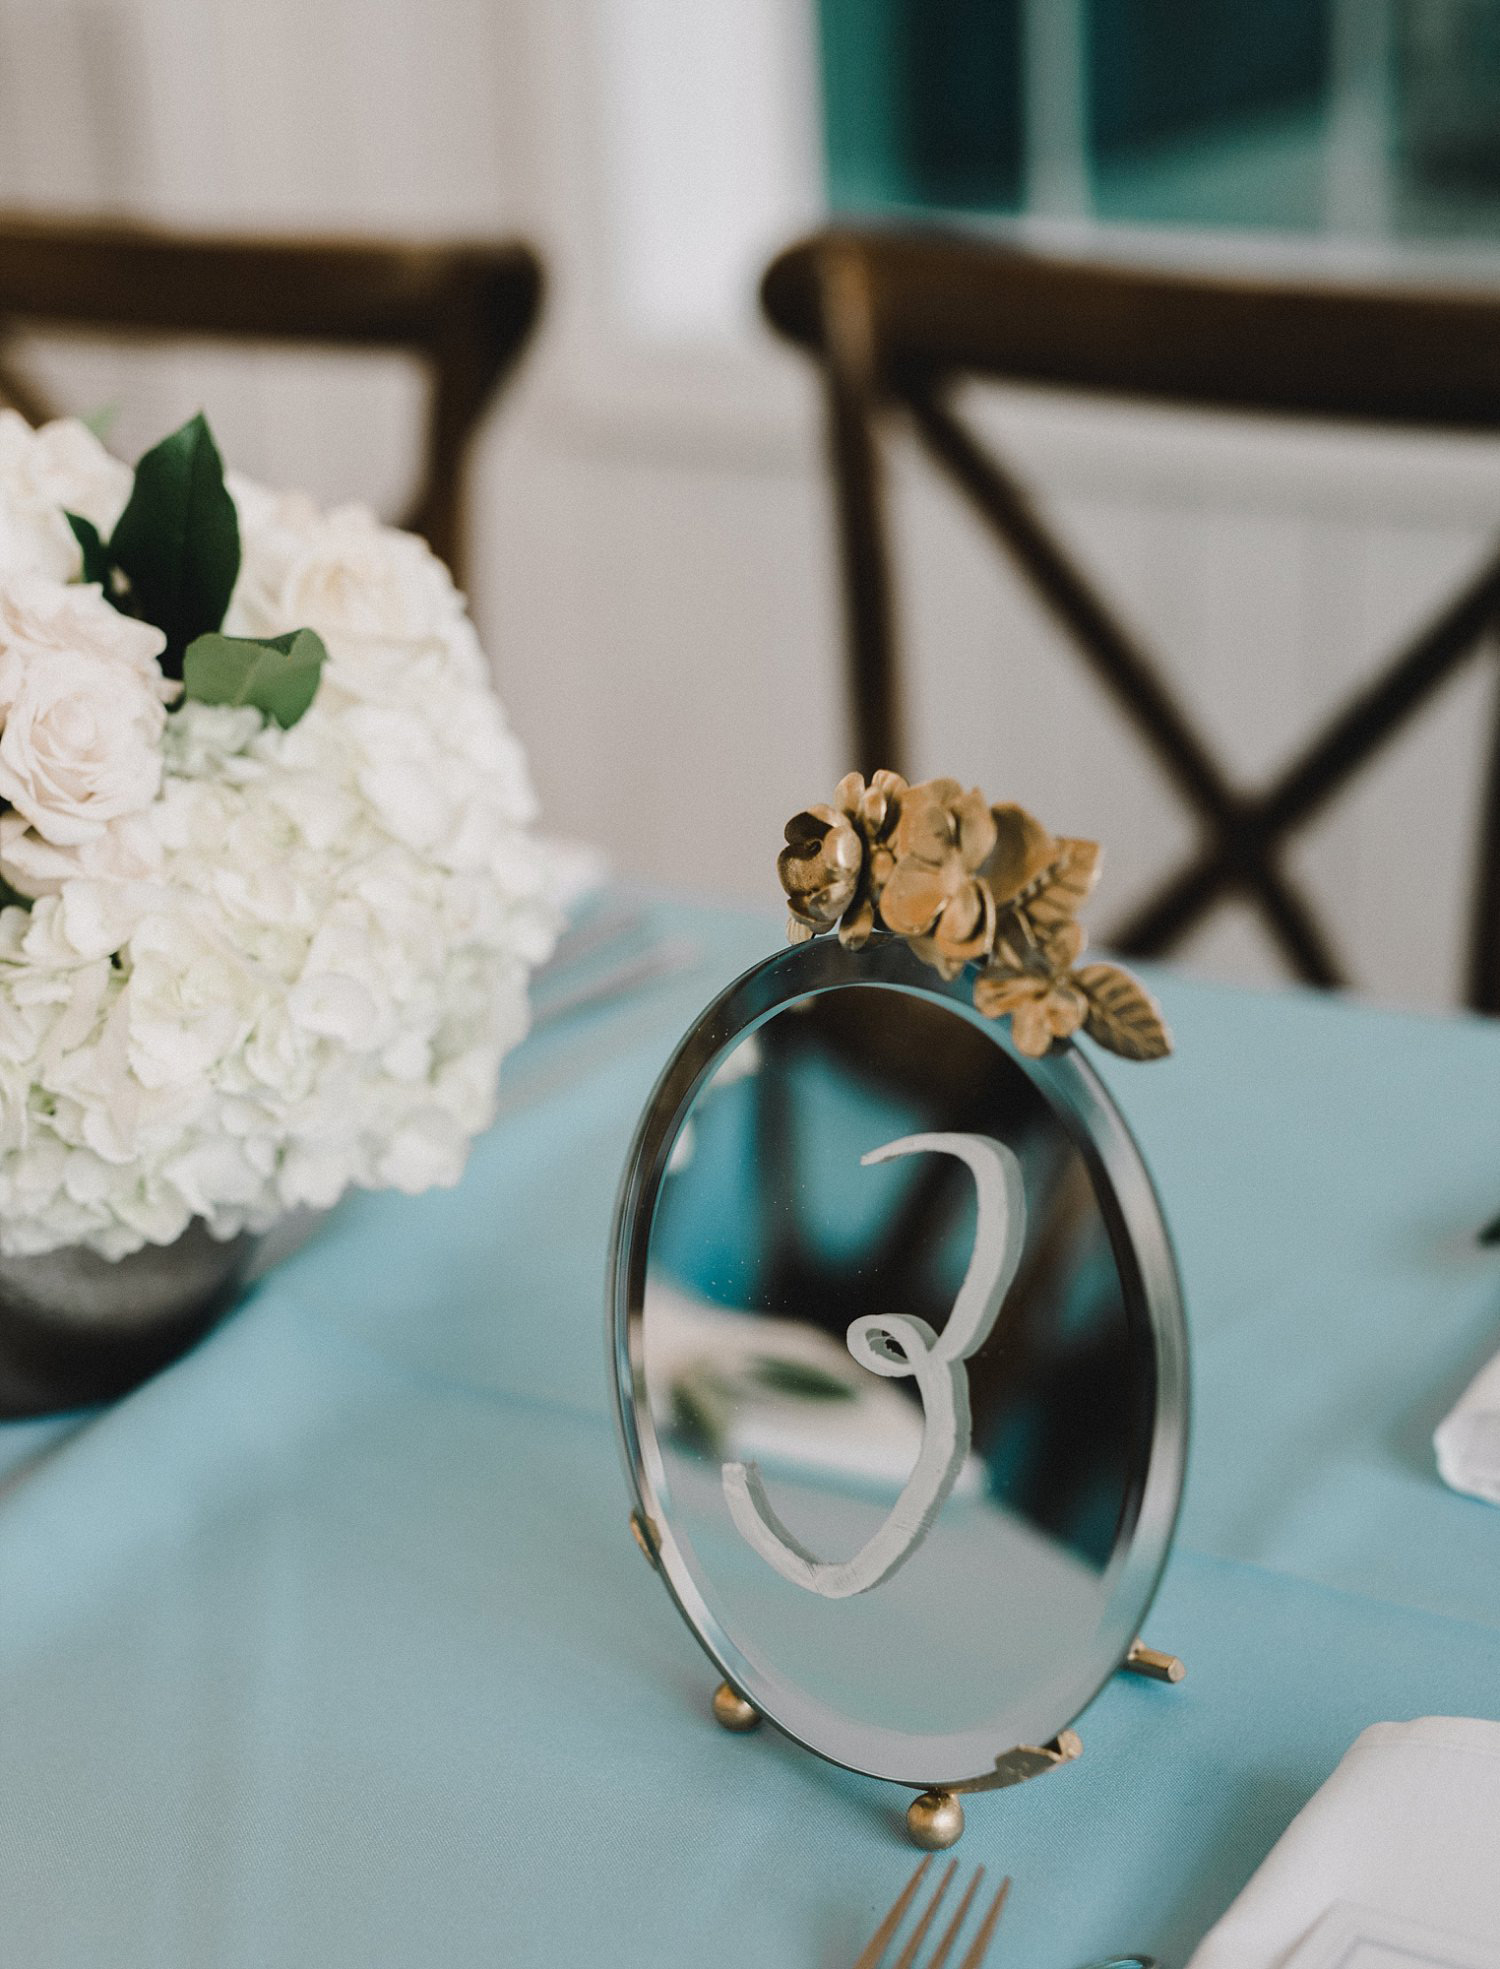 Vintage gold mirror table number for White Sparrow Barn wedding